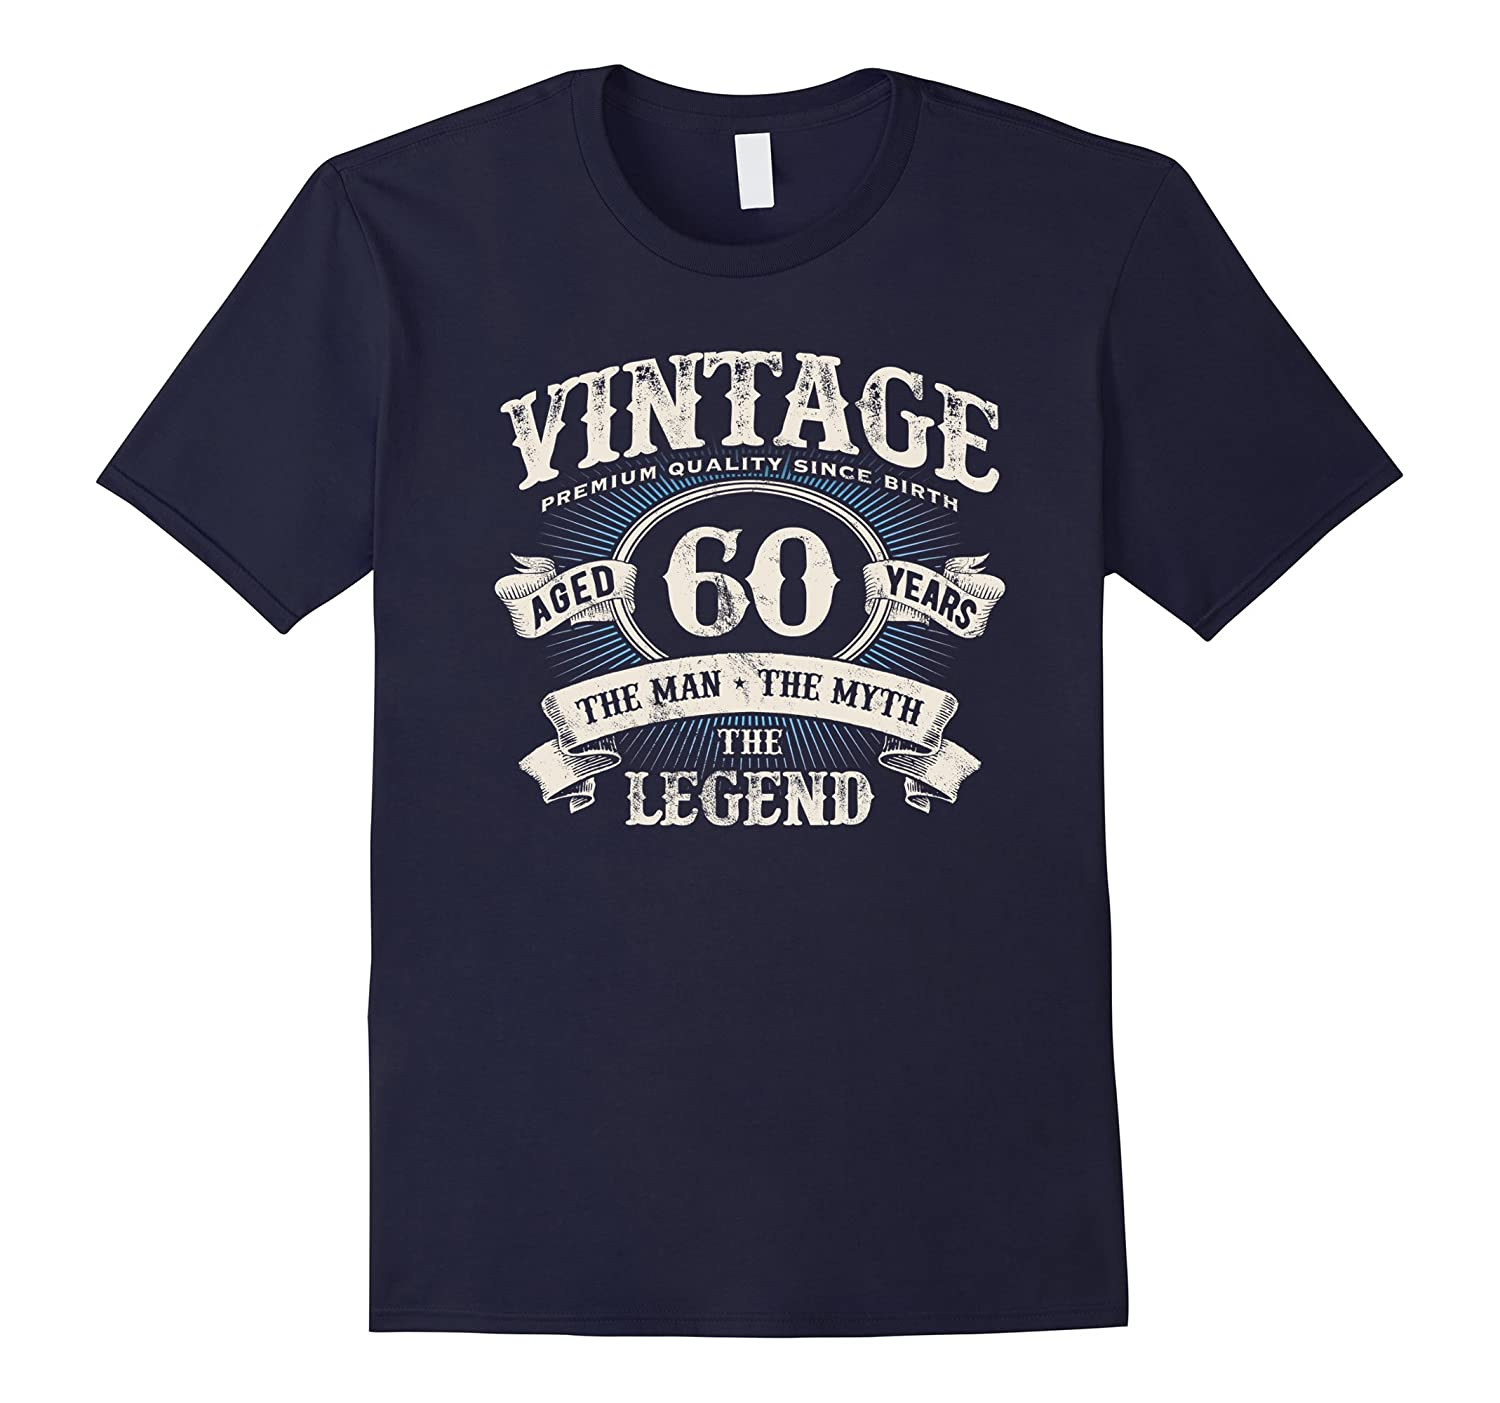 Vintage Premium Dude 60 Years Old Birthday Gift Made In 1958-RT